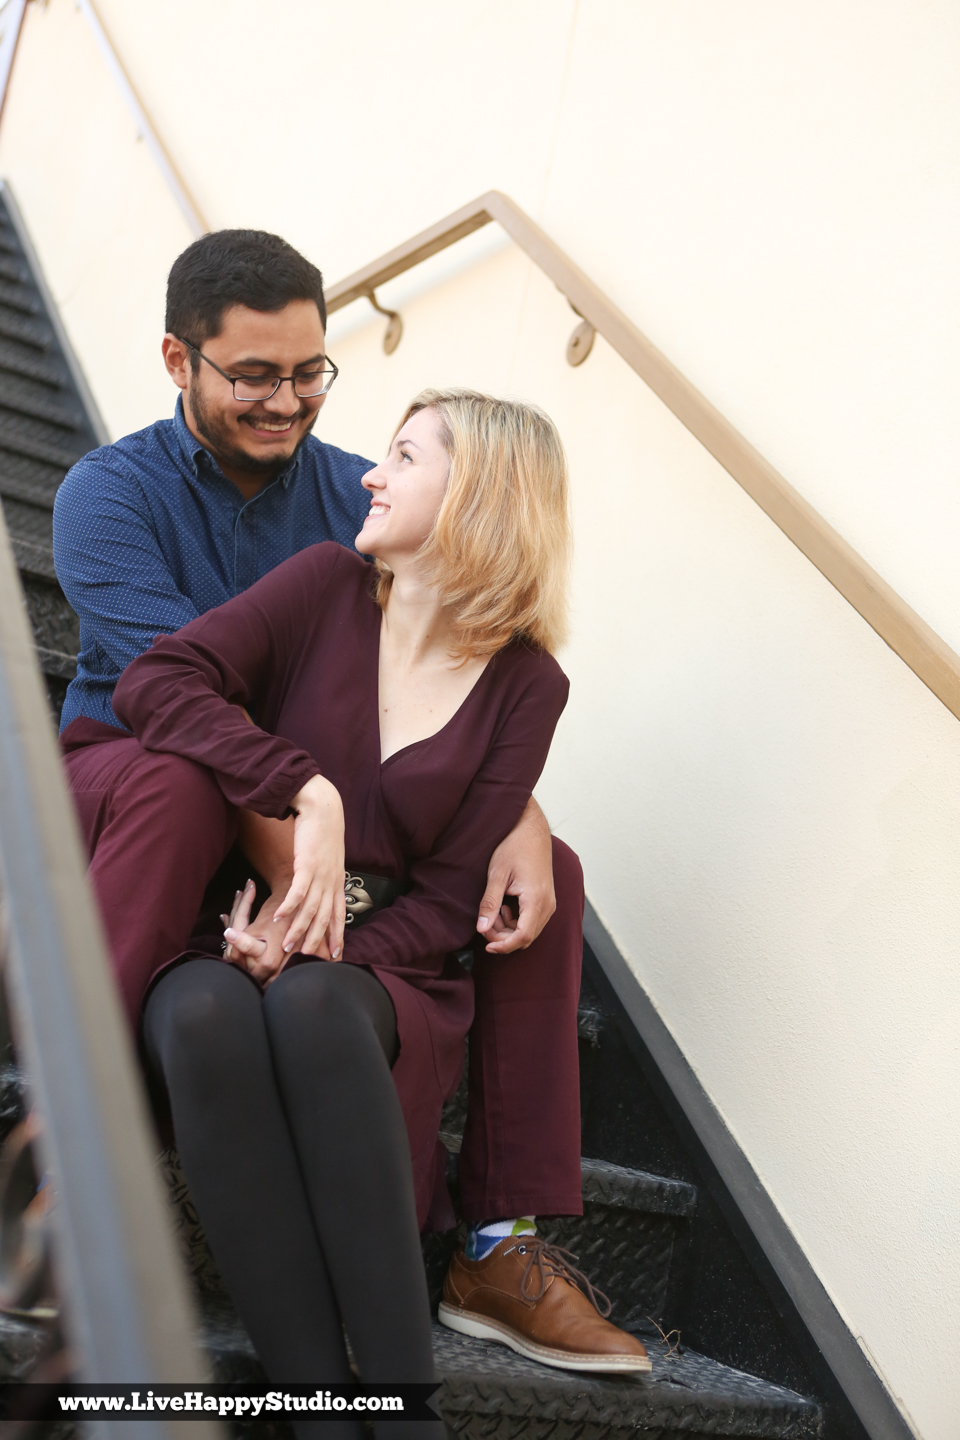 www.livehappystudio.com-church-street-engagement-session-photographer-orlando-central-florida-wedding-photographer-stairs-5.jpg